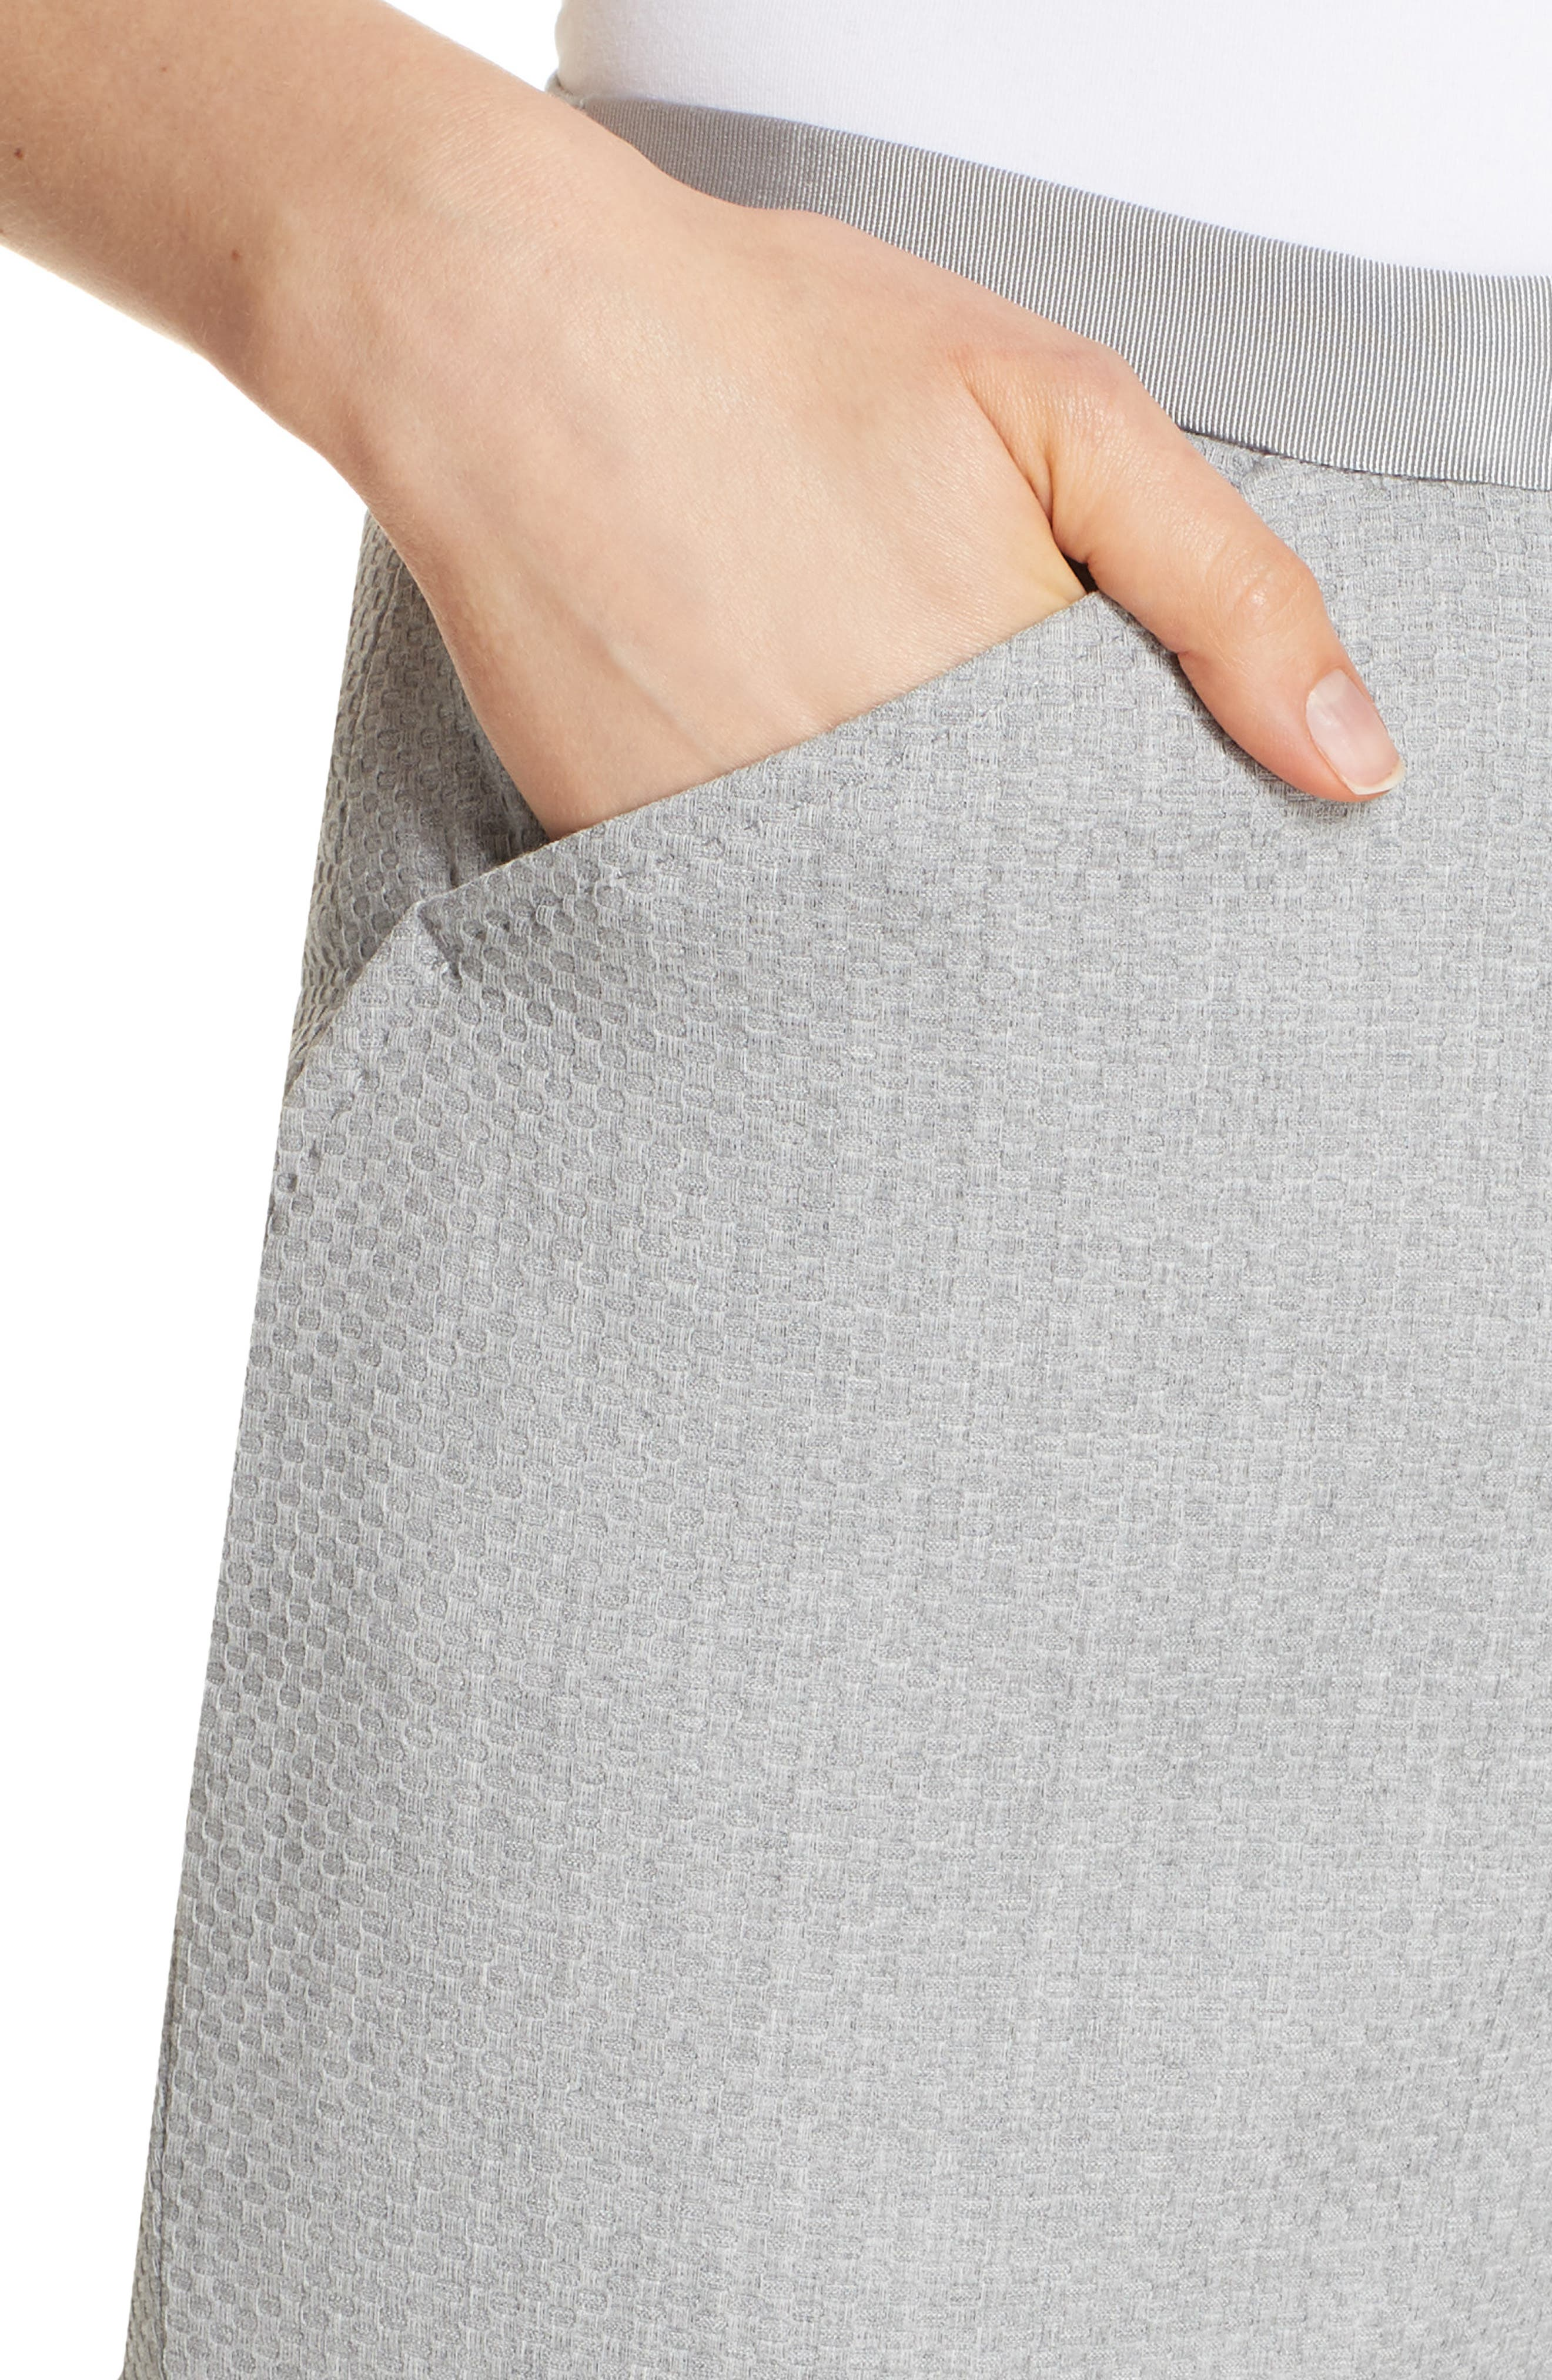 Ted Working Title Daizit Skinny Crop Pants,                             Alternate thumbnail 4, color,                             GREY